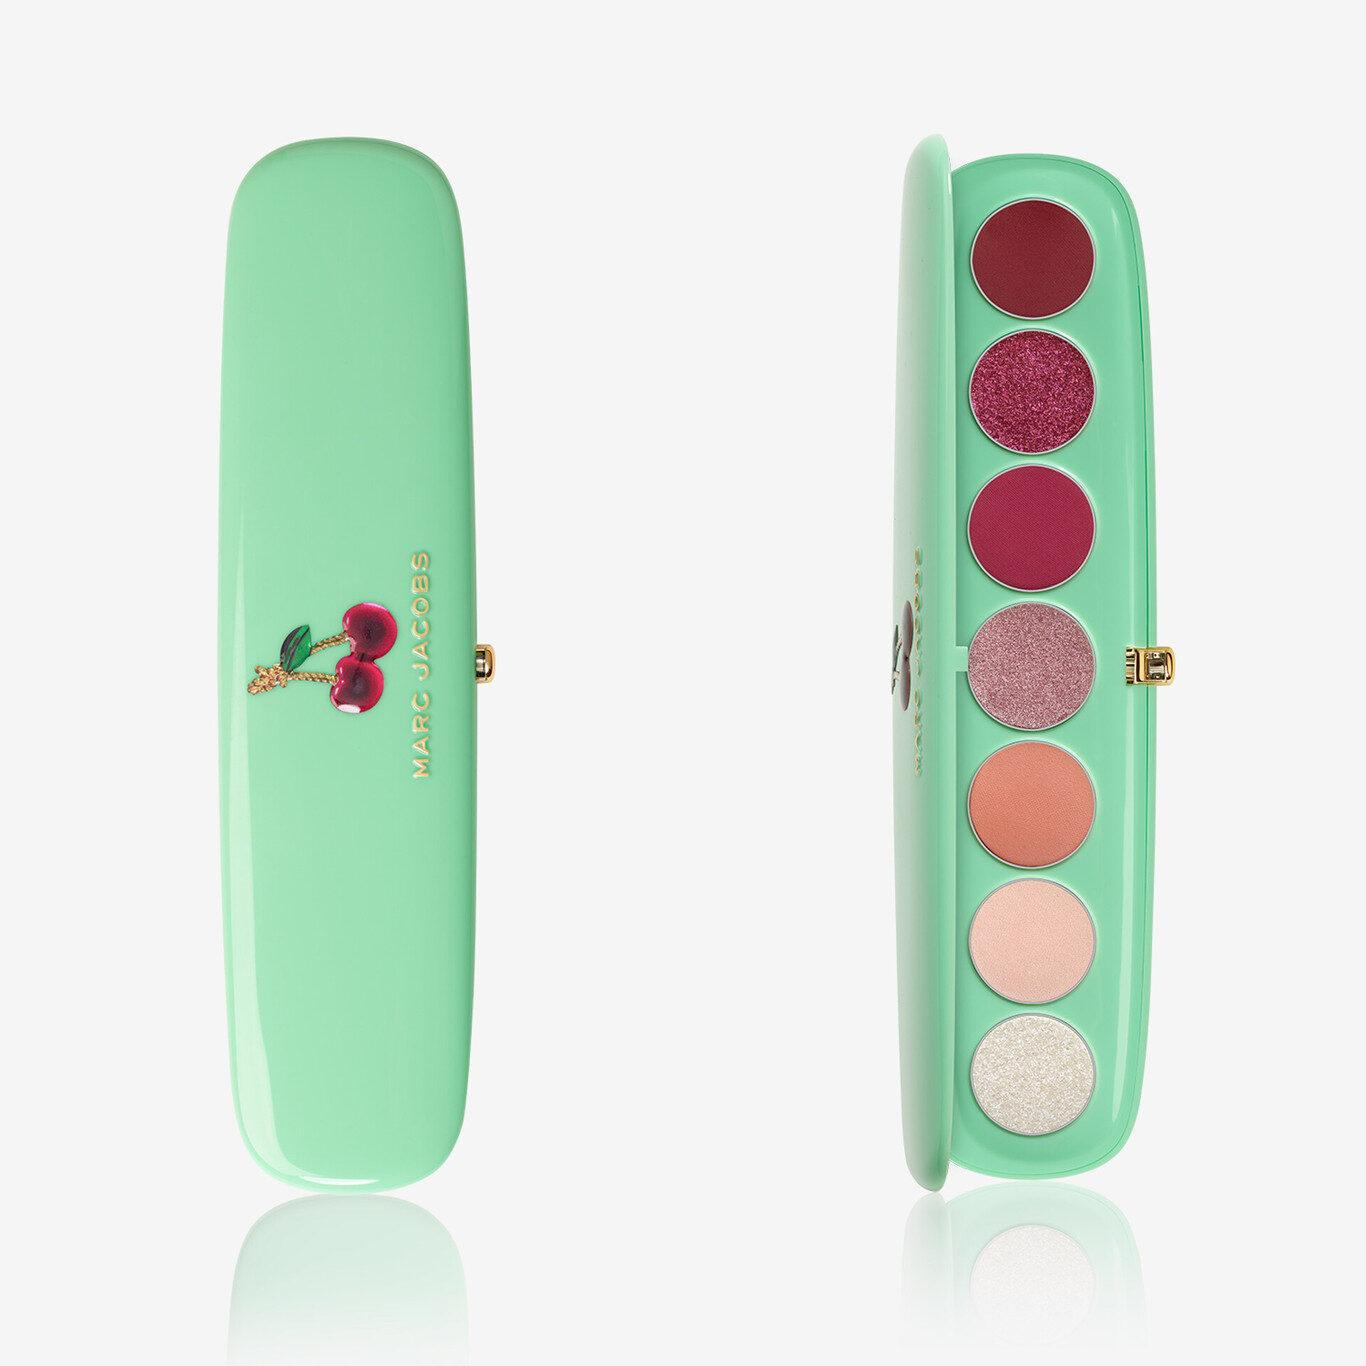 Marc Jacobs Very Merry Cherry Eye Conic Multi Finish Eye Palette Very Merry Cherry Edition Cover